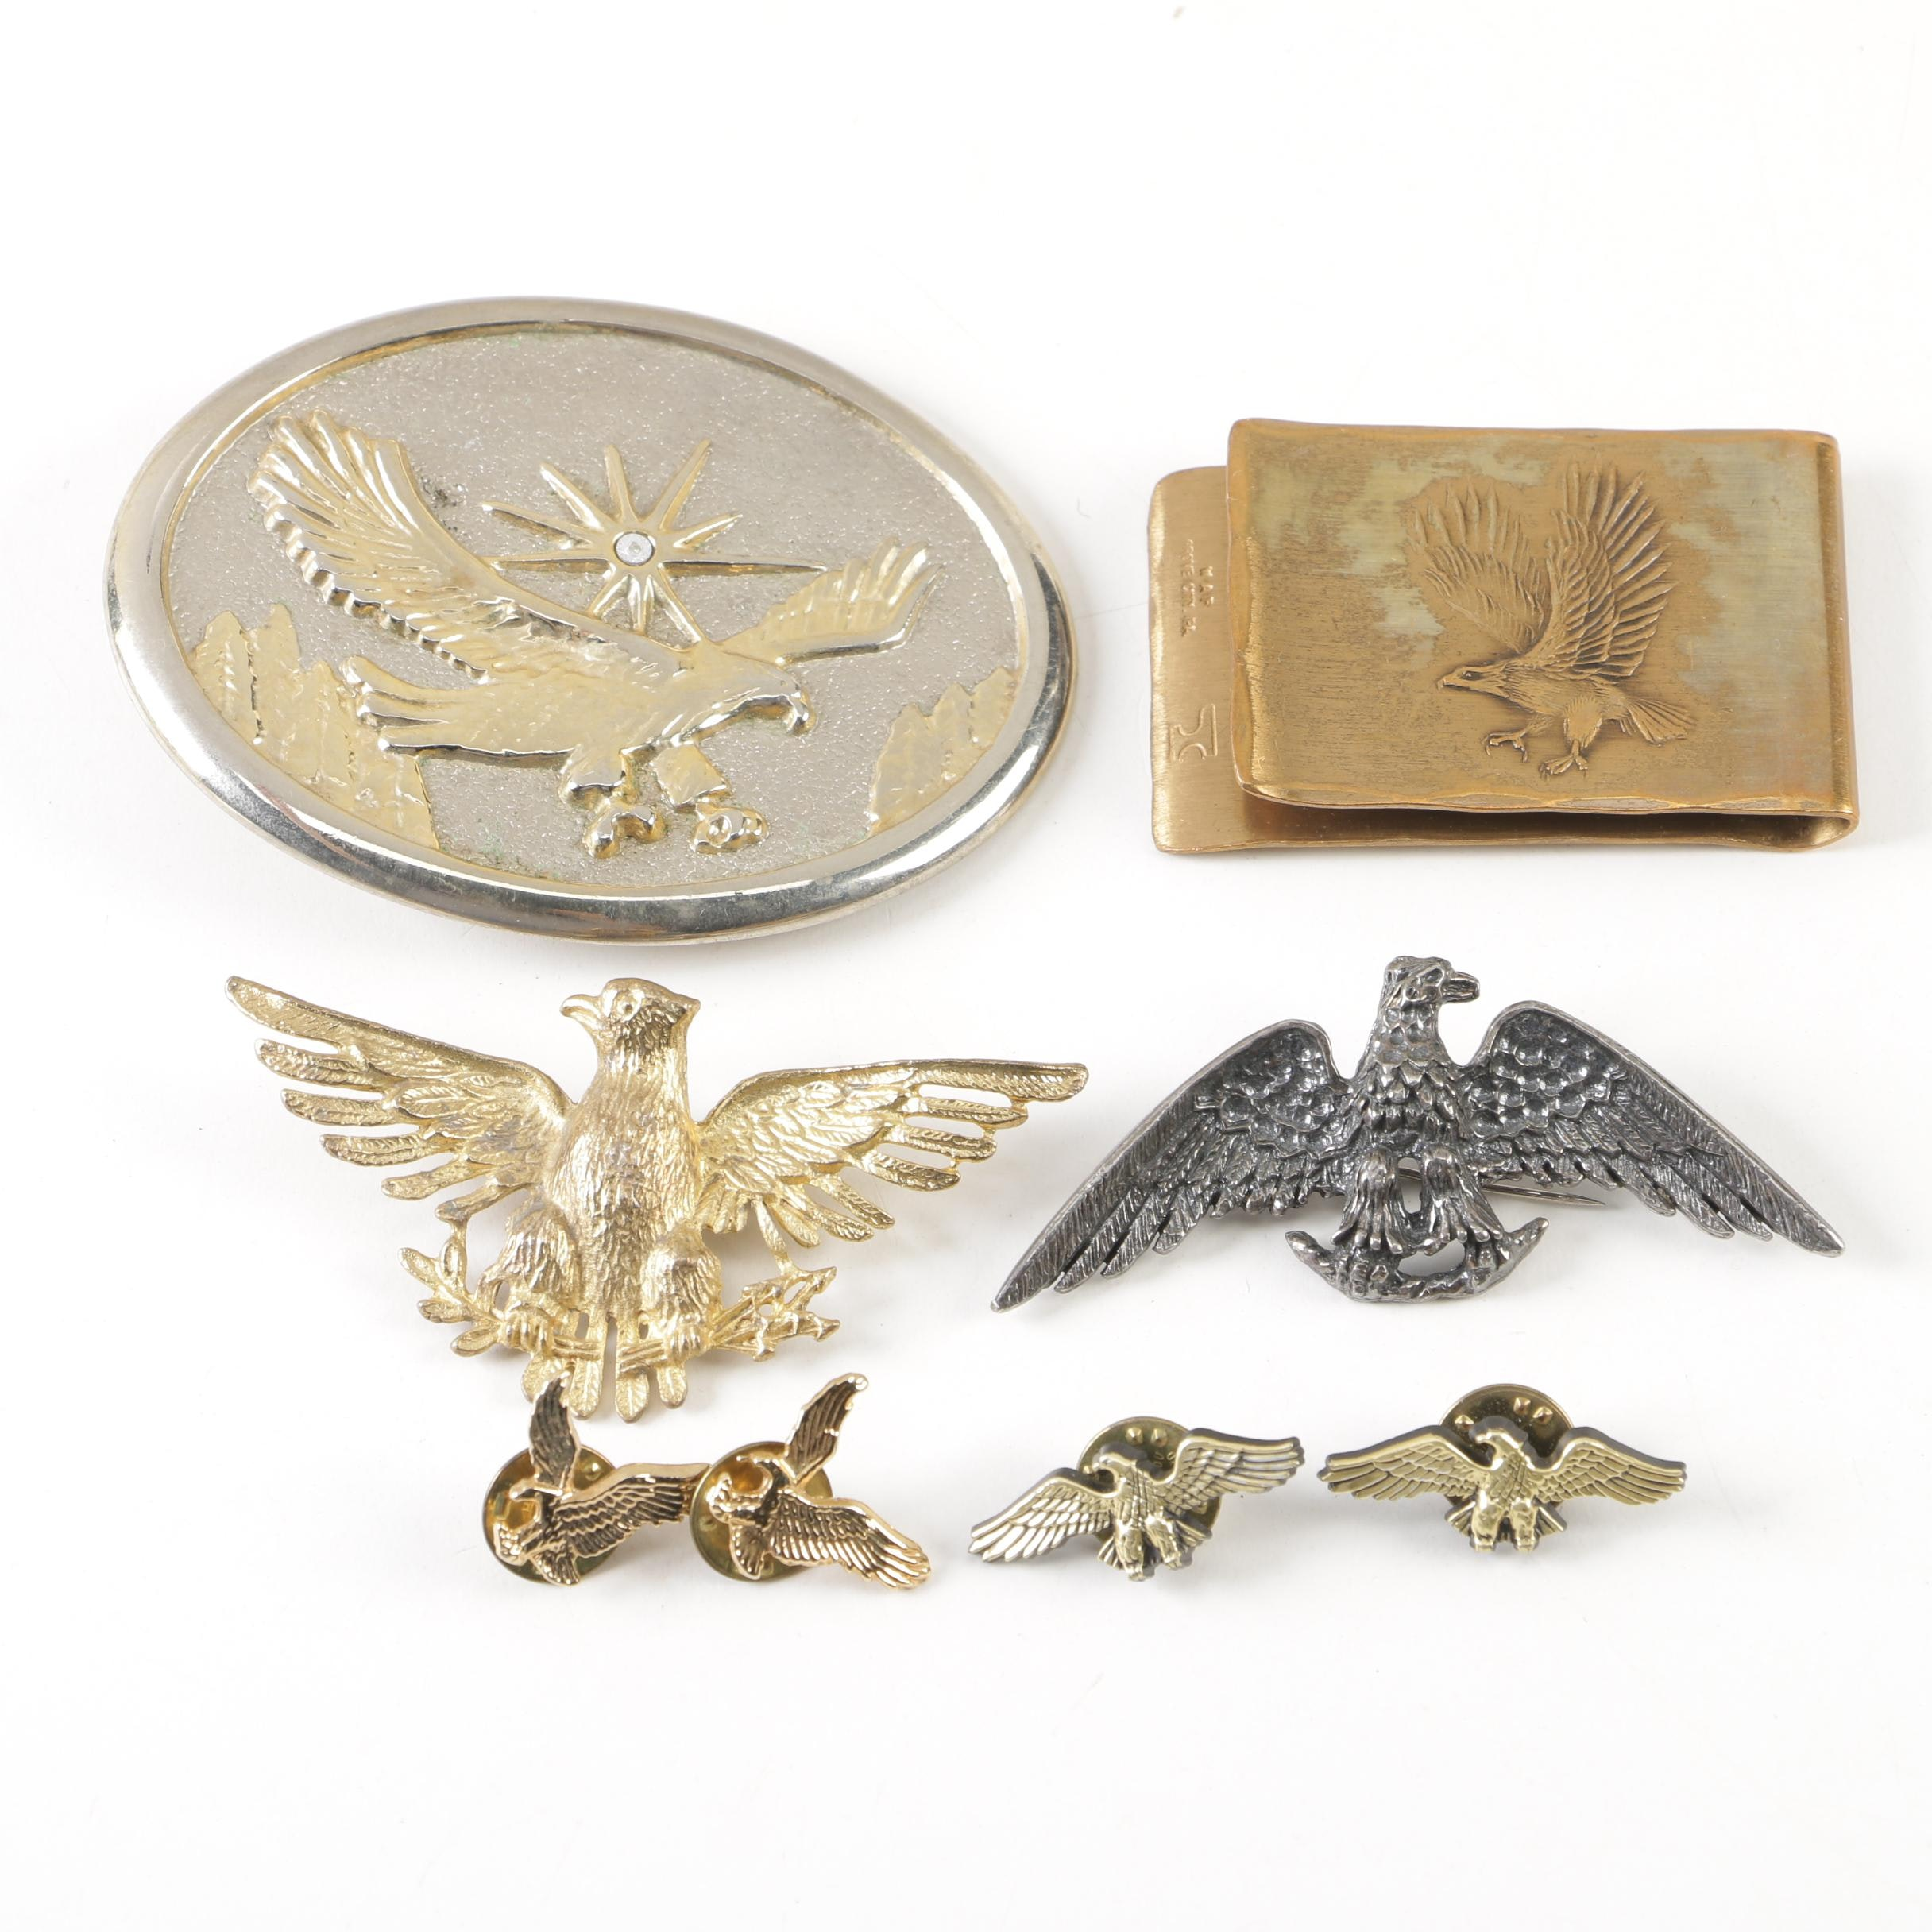 Vintage American Eagle Pins and Belt Buckles, 20th Century